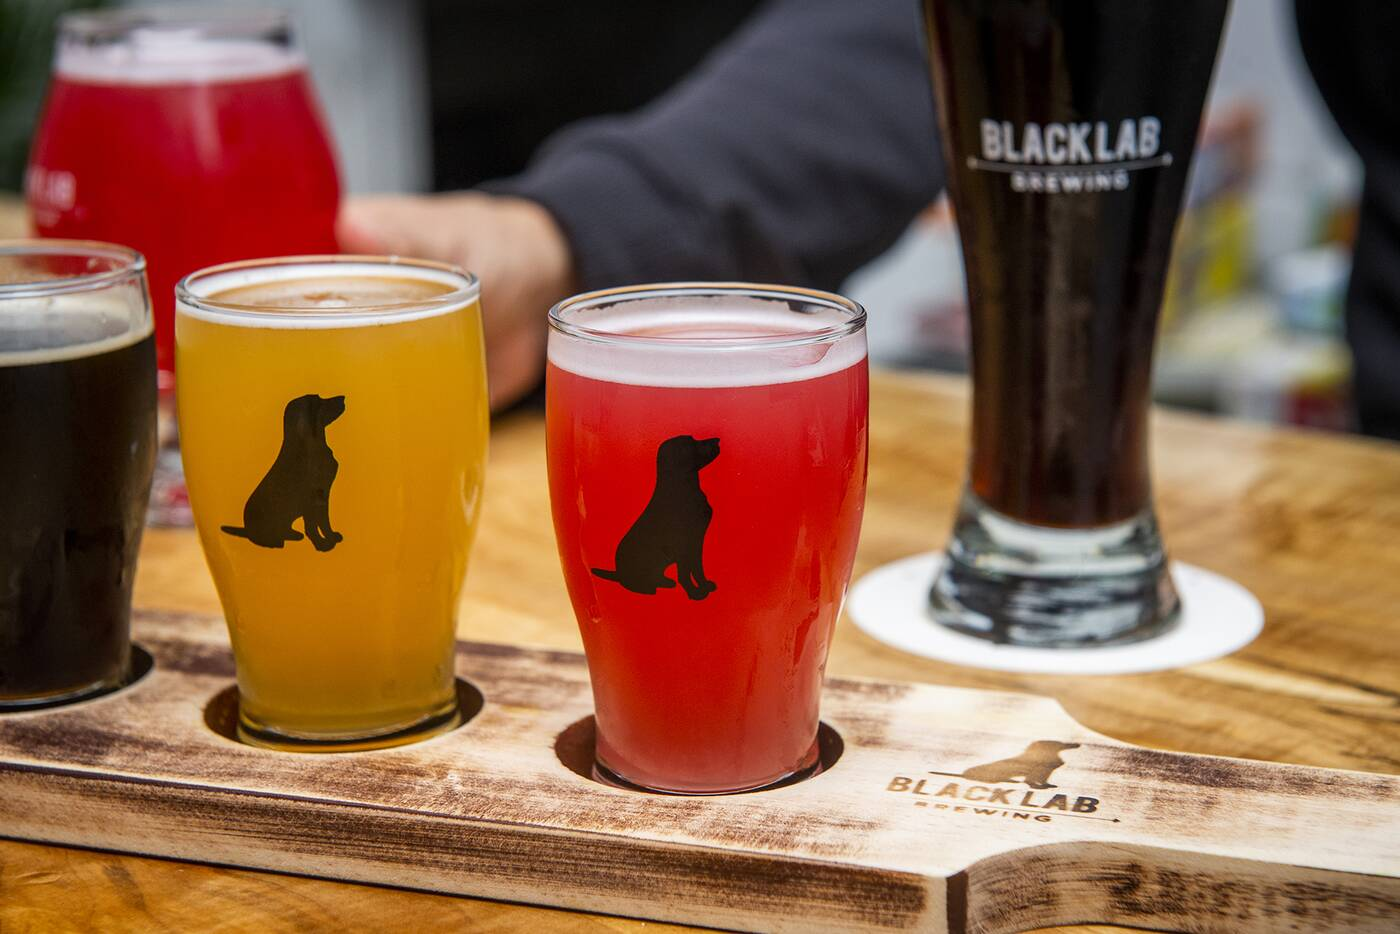 black lab brewing toronto